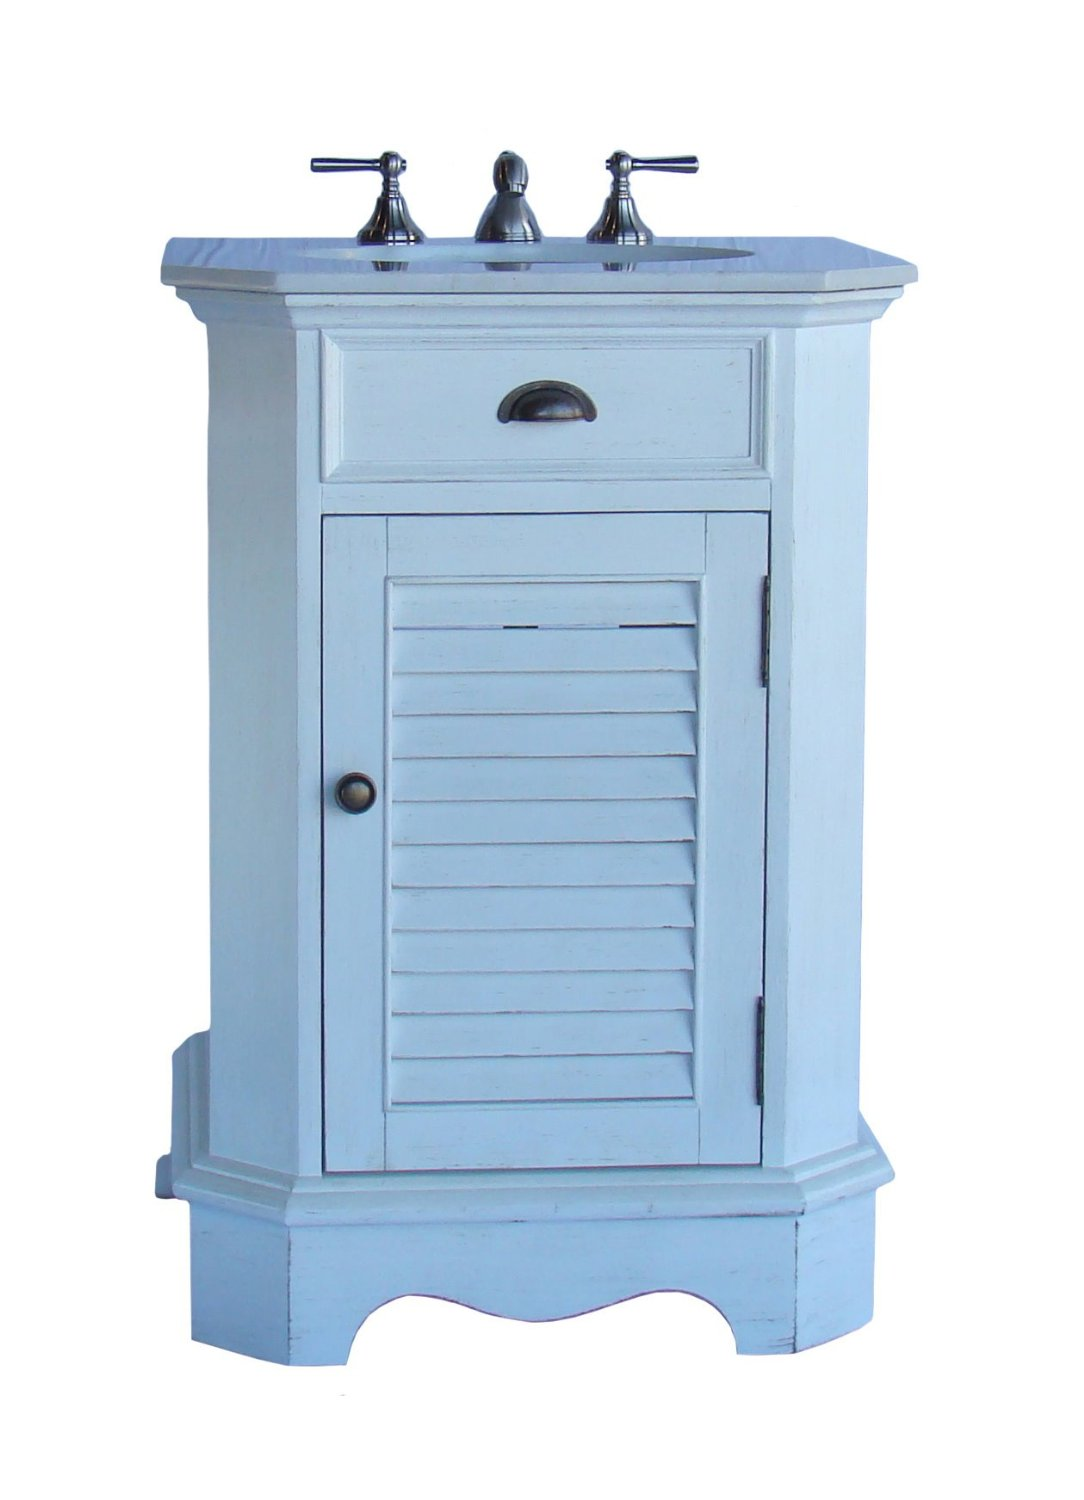 24 Inch Bathroom Vanity With Legs 24 inch petite cottage bathroom vanity